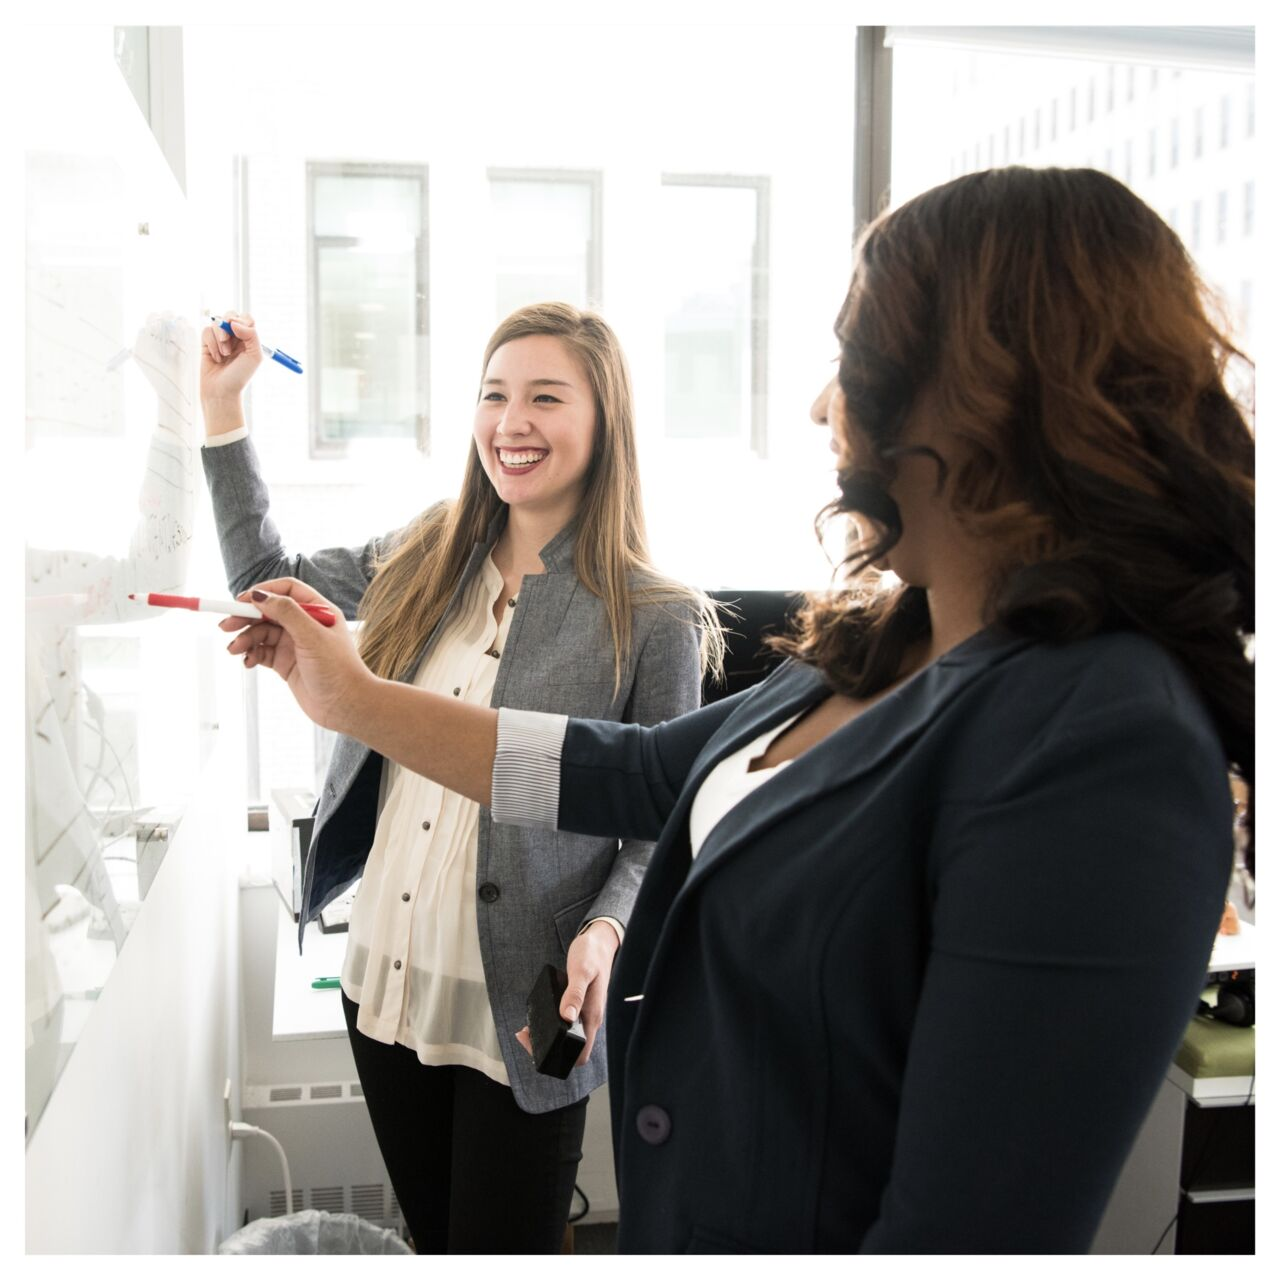 Two laughing women standing and writing on whiteboard.